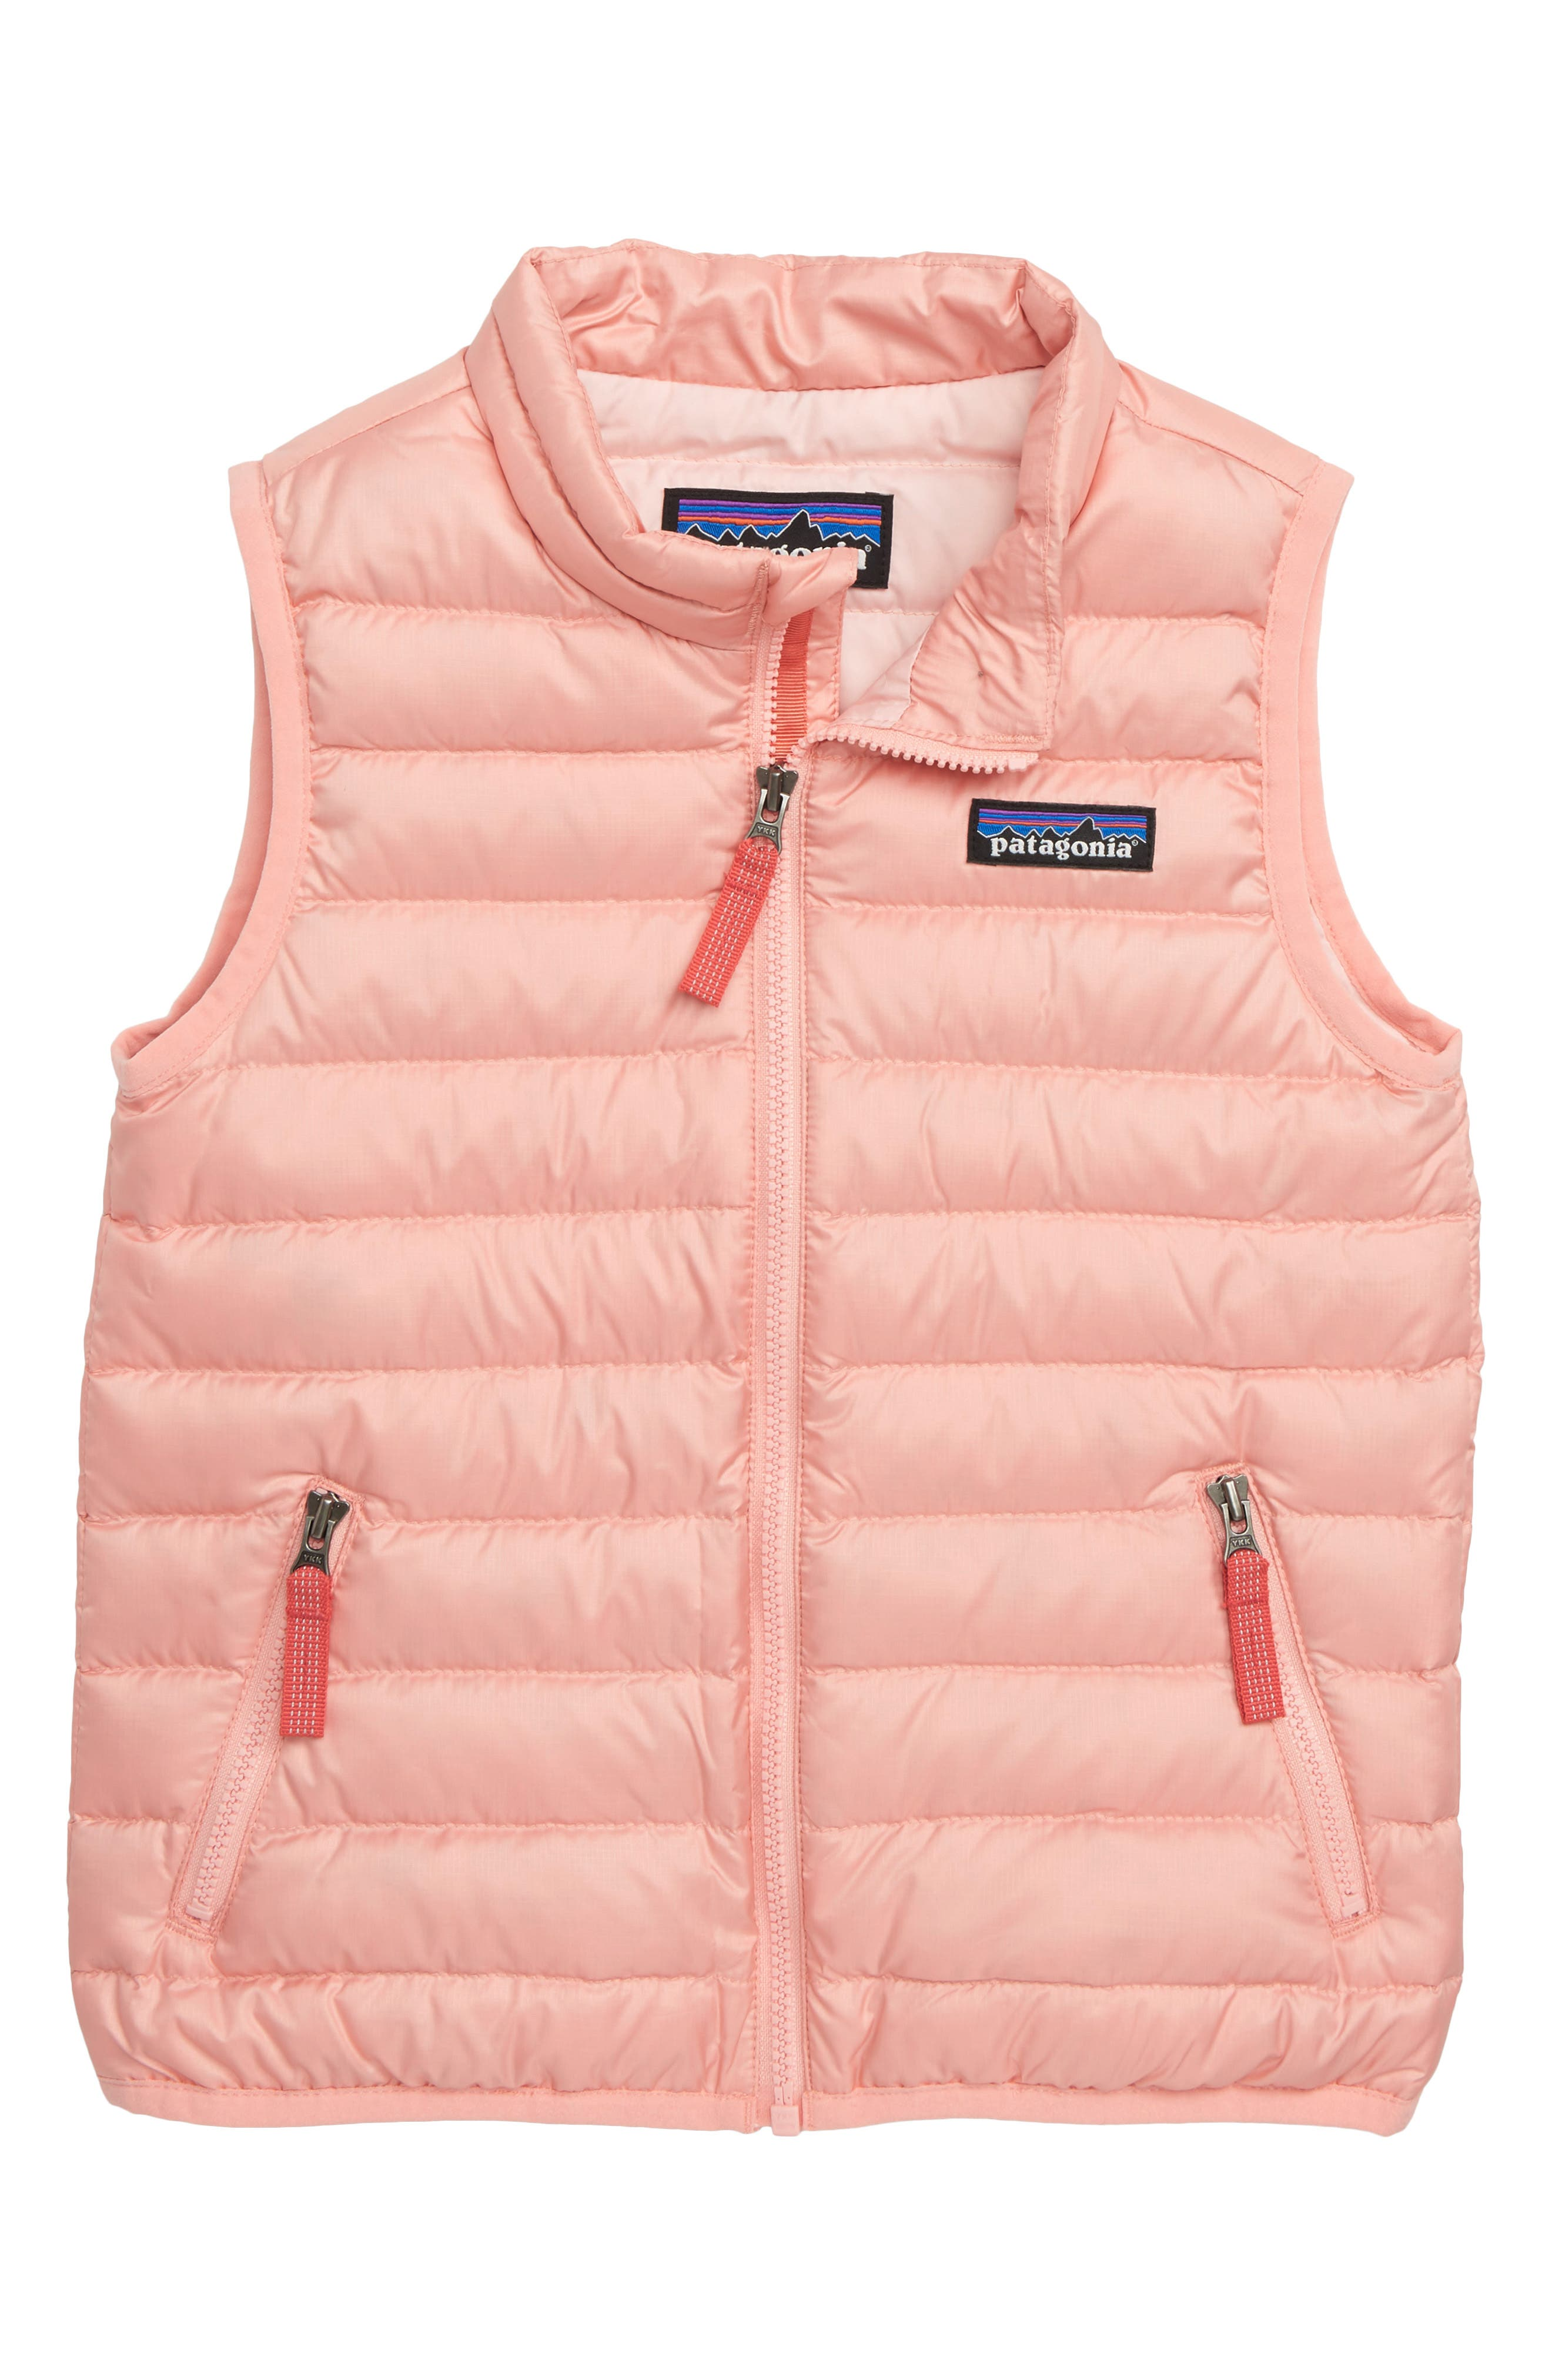 600-Fill Down Sweater Vest,                         Main,                         color, MINERAL PINK